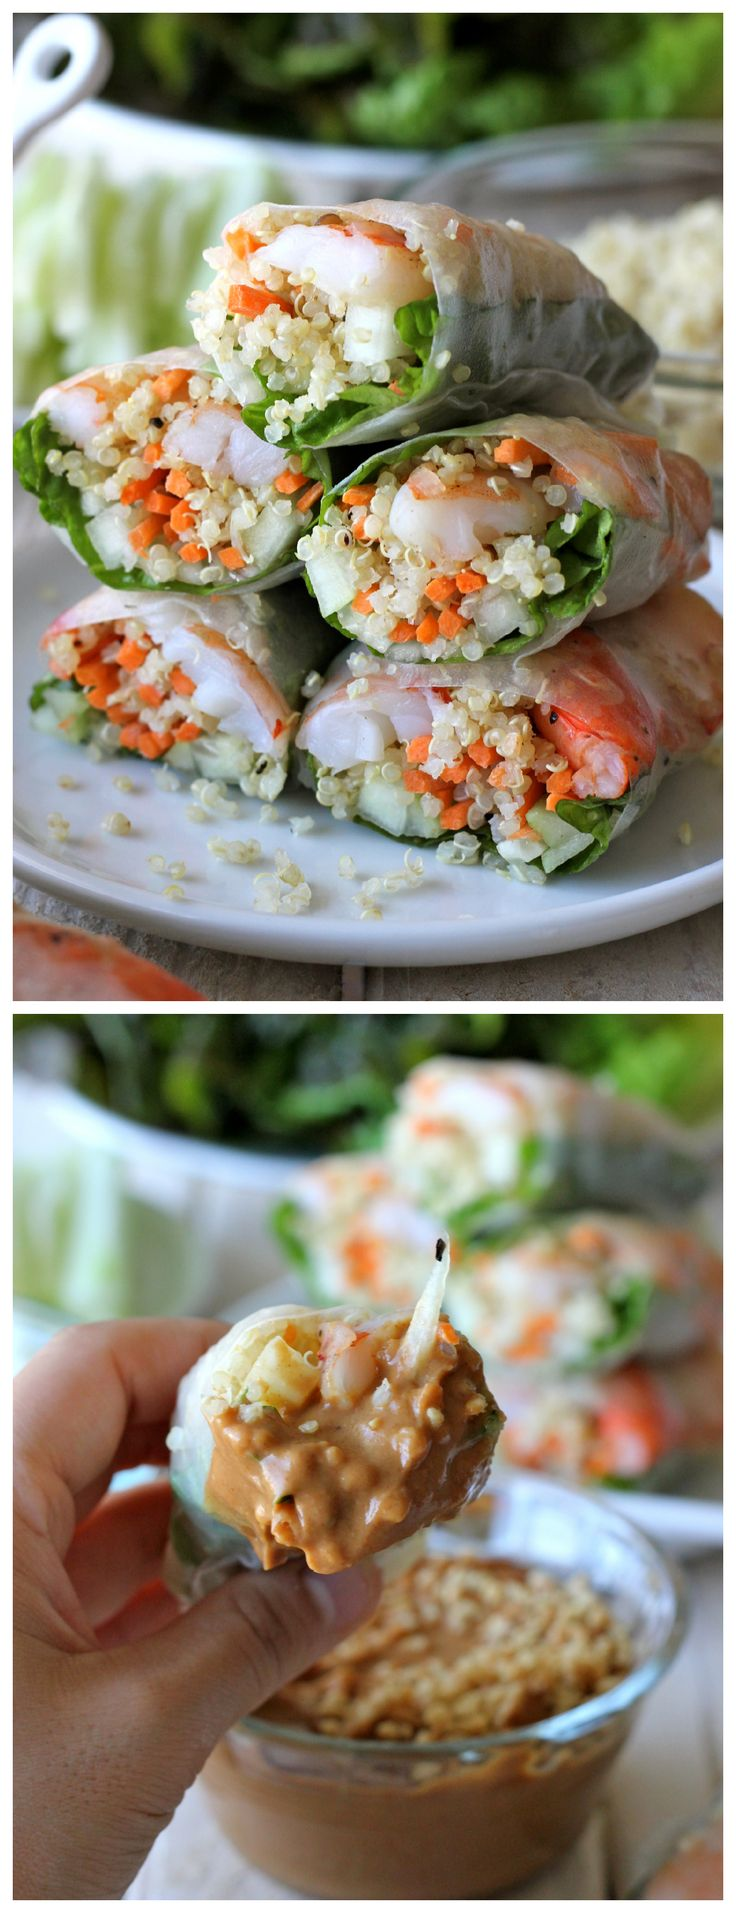 Roasted Shrimp Quinoa Spring Rolls - Quinoa is a wonderful protein-packed substitute for rice noodles in these easy spring rolls!